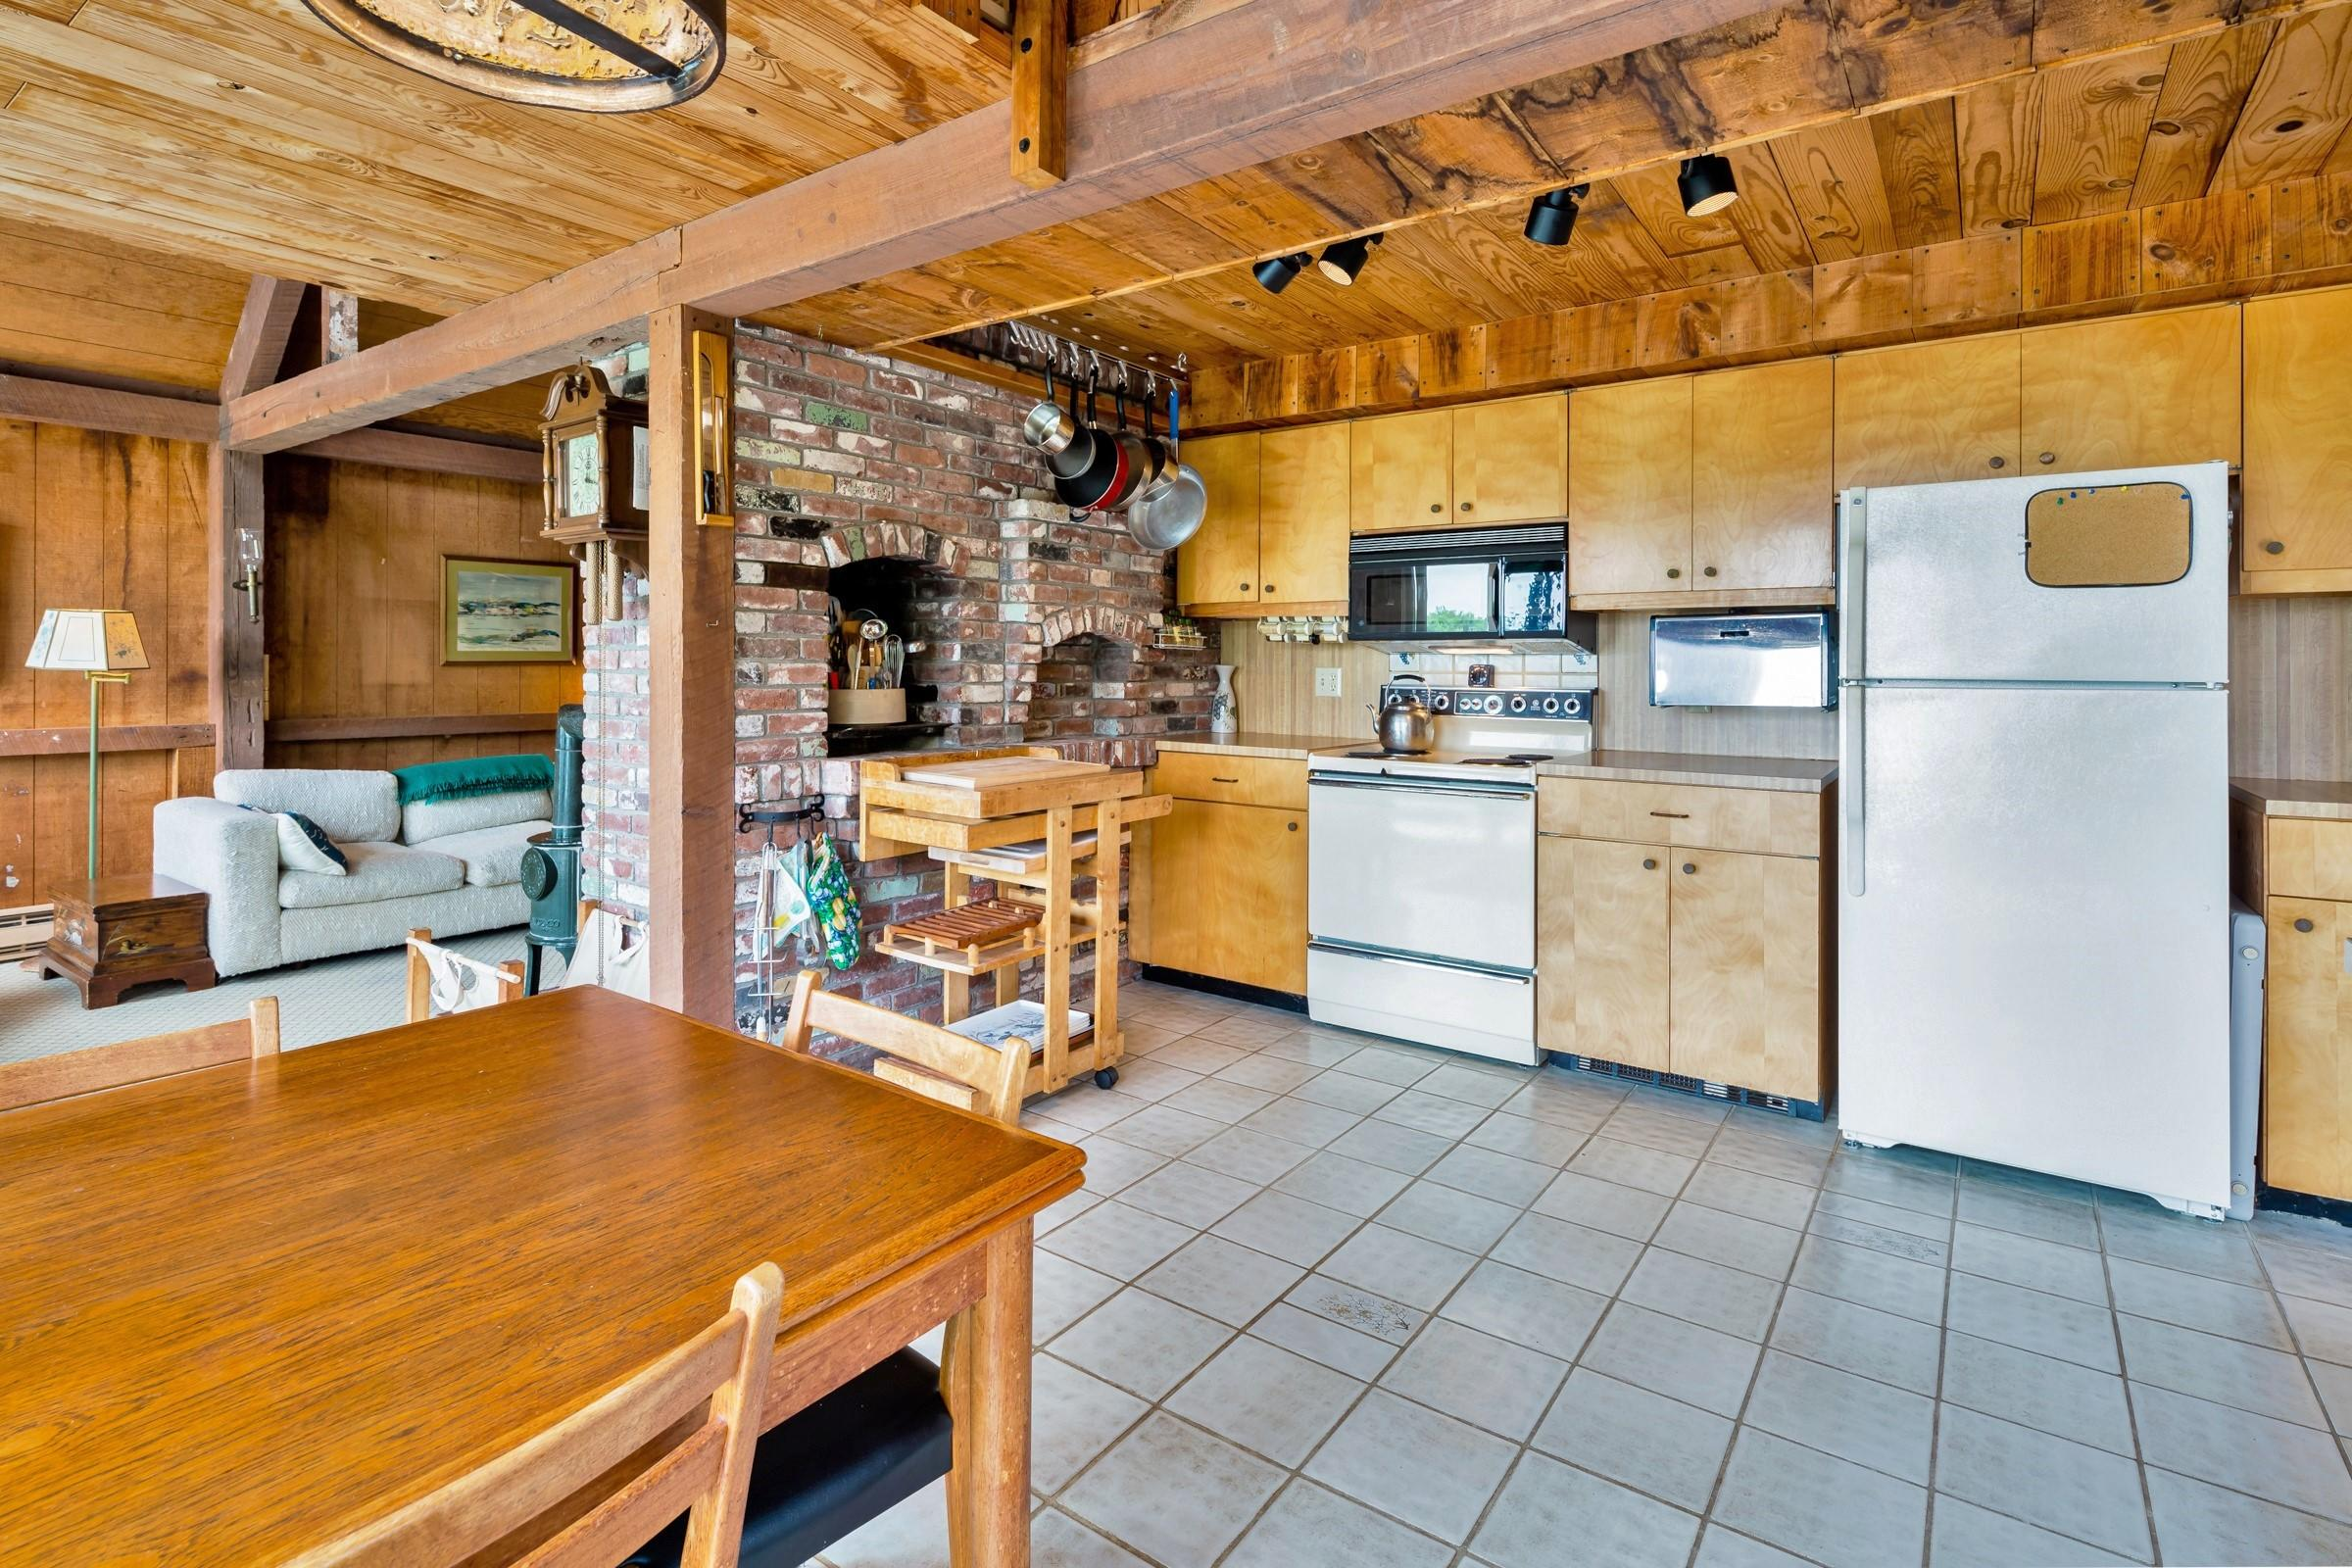 2 & 7 Skunks Bluff Orleans, MA 02653